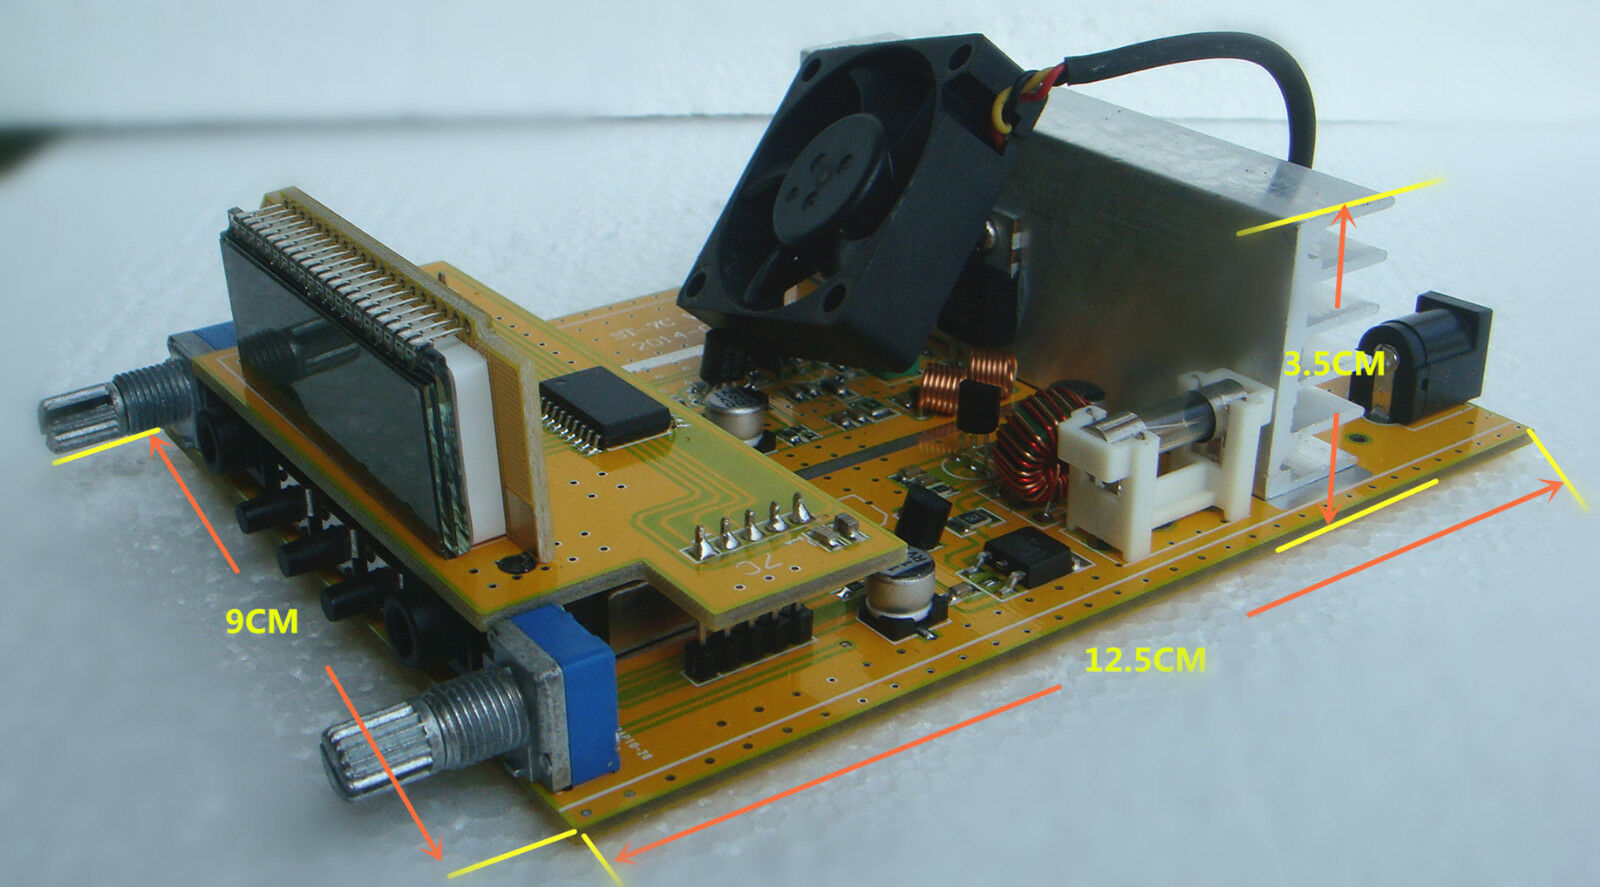 St 7c Pcb 1w 7w Fm Transmitter Stereo Pll Broadcast Radio Station 76 Circuit Norton Secured Powered By Verisign